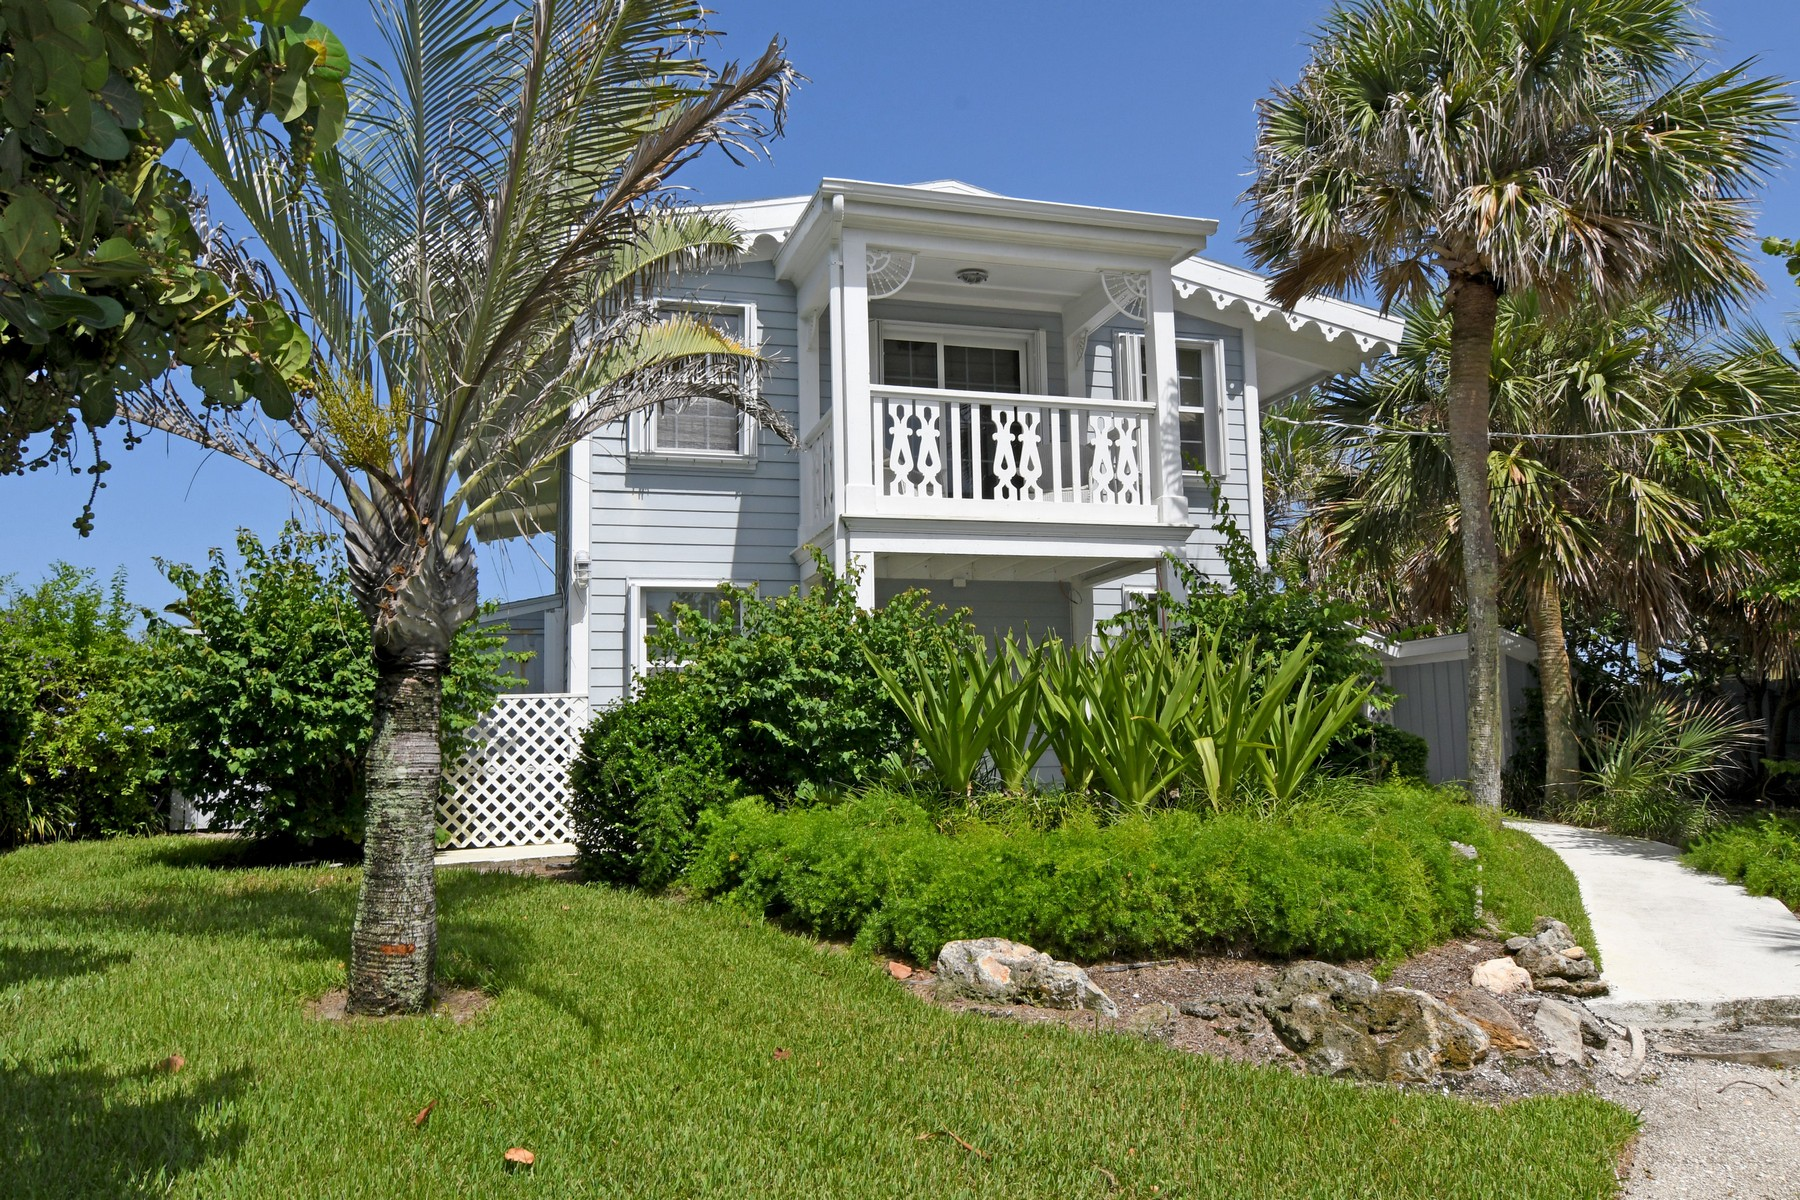 Vivienda unifamiliar por un Venta en Magnificent Key West Style Cottage 1801 E Barefoot Place, Vero Beach, Florida, 32963 Estados Unidos